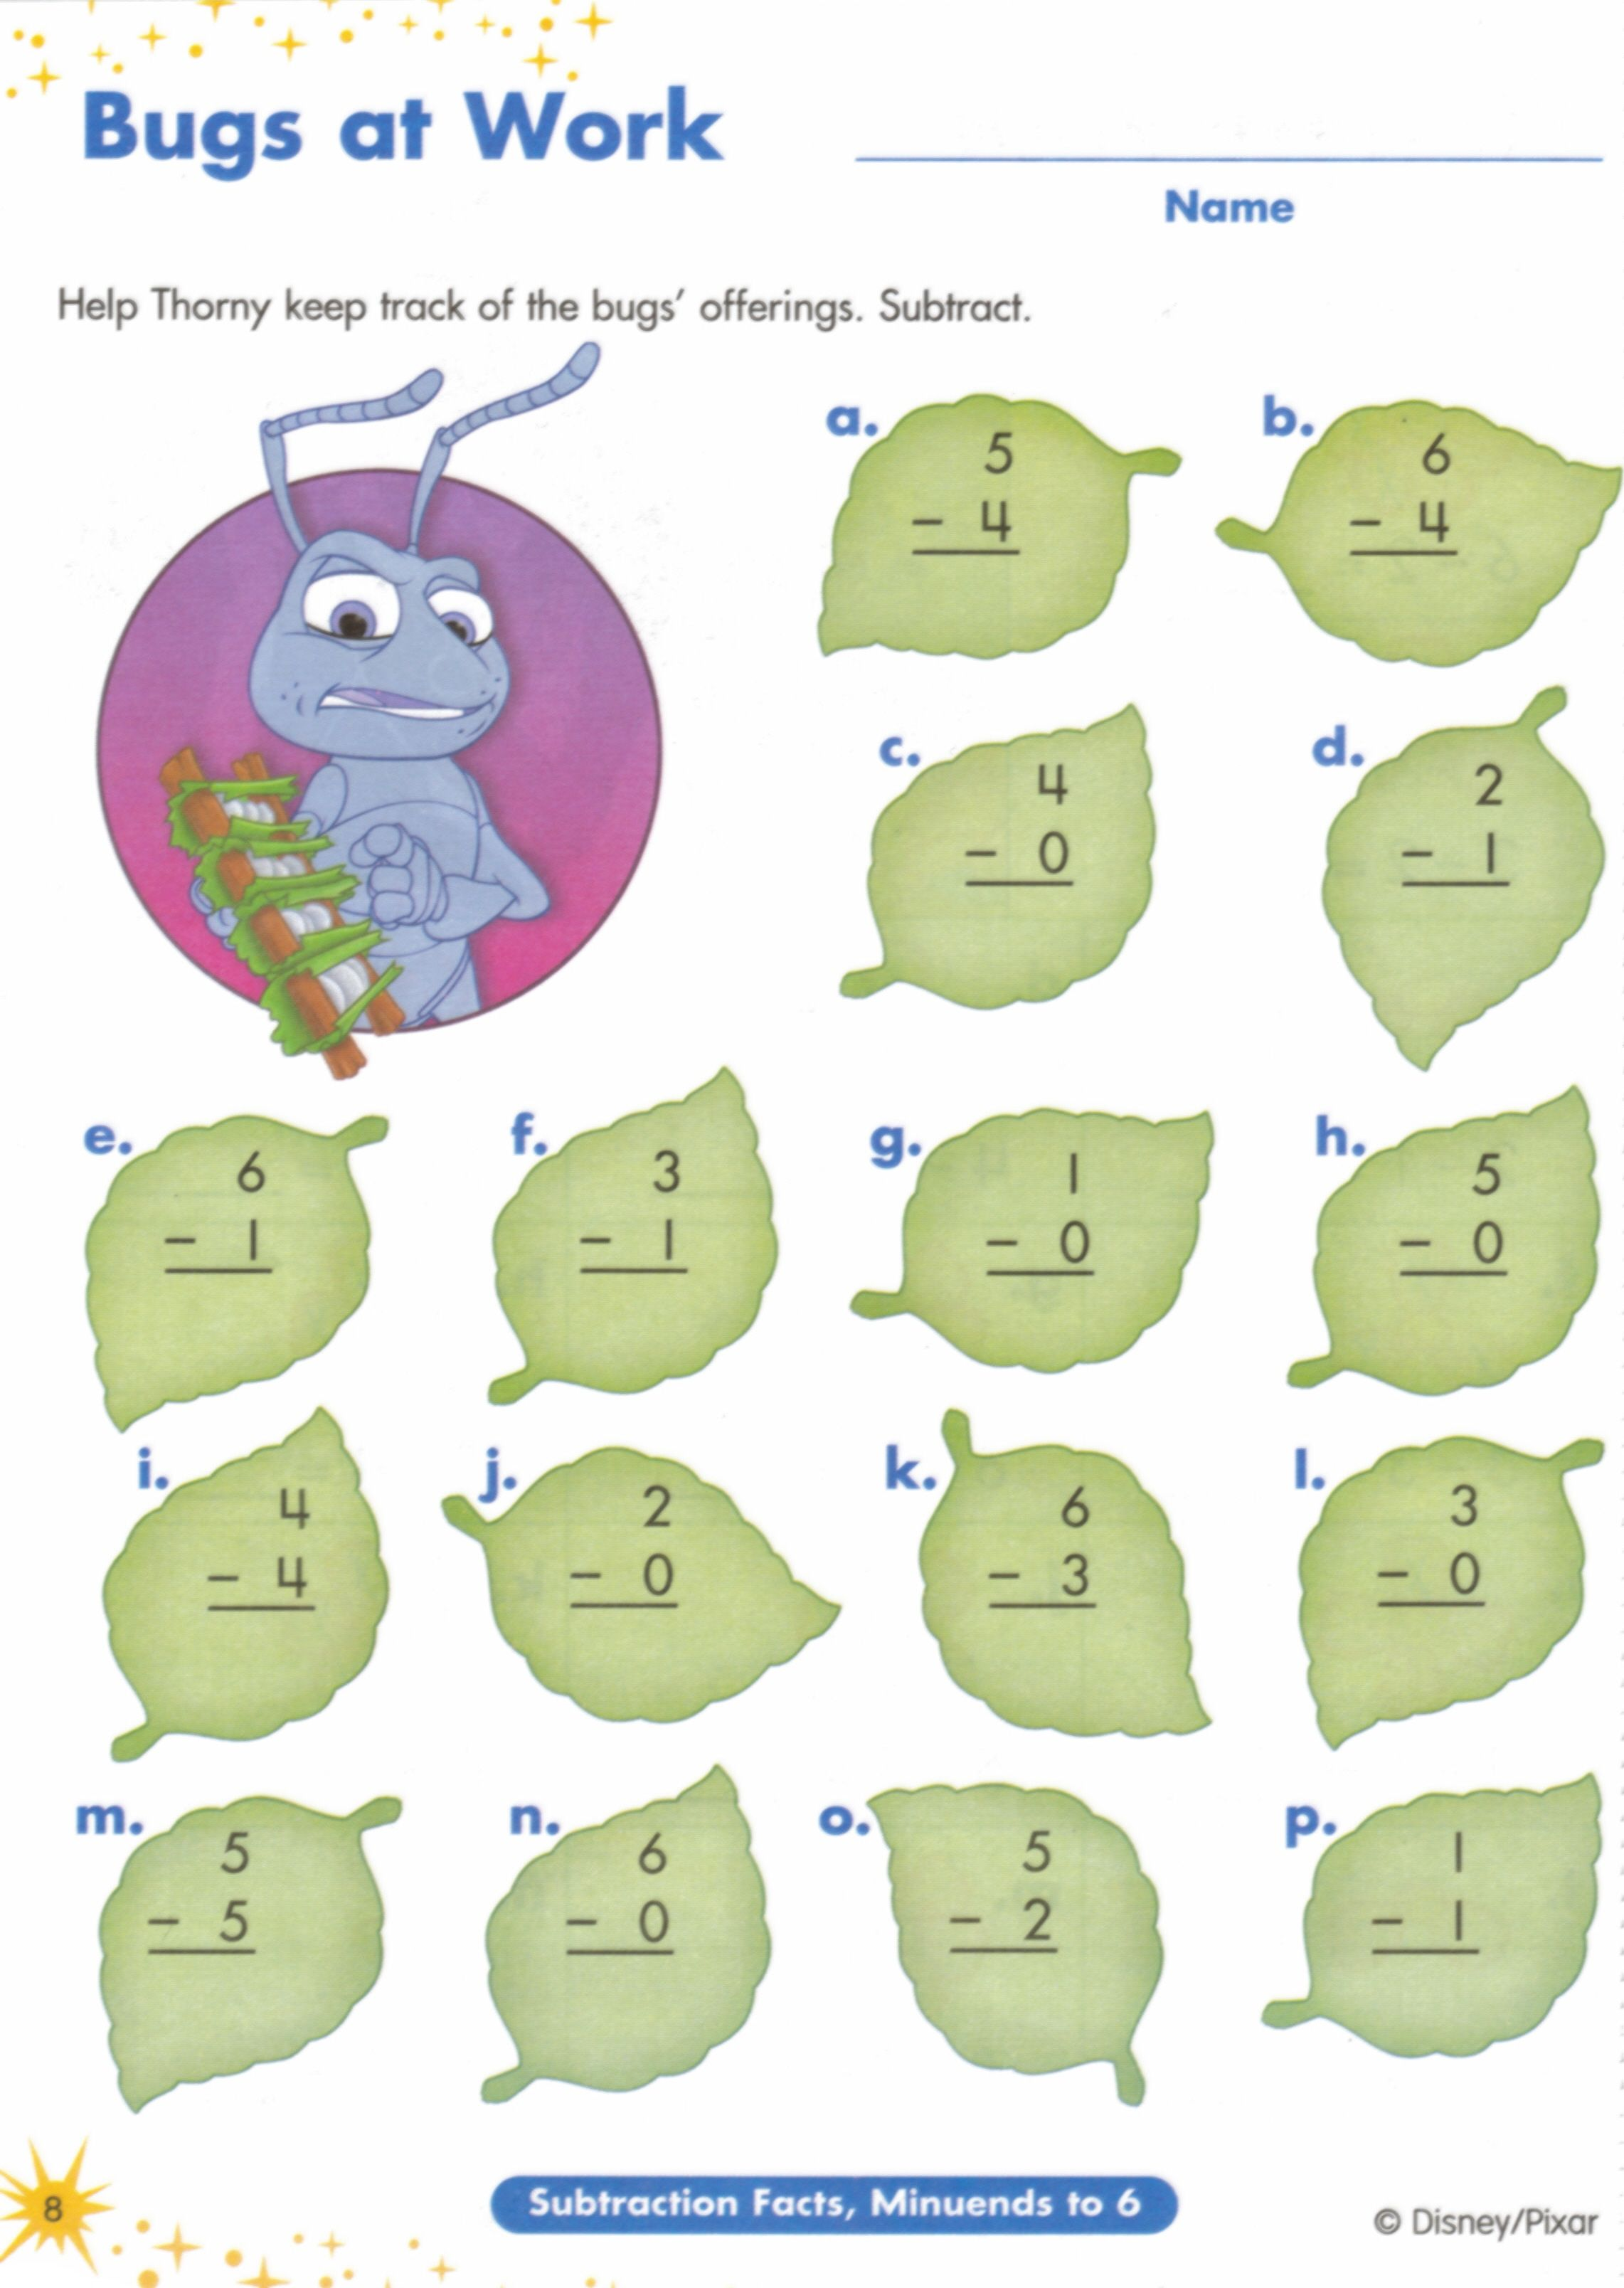 Proatmealus  Sweet  Images About Worksheets On Pinterest  Fun Facts For Kids  With Lovely  Images About Worksheets On Pinterest  Fun Facts For Kids Earth Day Worksheets And Jungles With Alluring Future Perfect Tense Worksheet Also Same Vowel Sound Worksheets In Addition Bus Shelter Division Worksheet And X Table Worksheet As Well As Making Spelling Worksheets Additionally Math In Spanish Worksheets From Pinterestcom With Proatmealus  Lovely  Images About Worksheets On Pinterest  Fun Facts For Kids  With Alluring  Images About Worksheets On Pinterest  Fun Facts For Kids Earth Day Worksheets And Jungles And Sweet Future Perfect Tense Worksheet Also Same Vowel Sound Worksheets In Addition Bus Shelter Division Worksheet From Pinterestcom